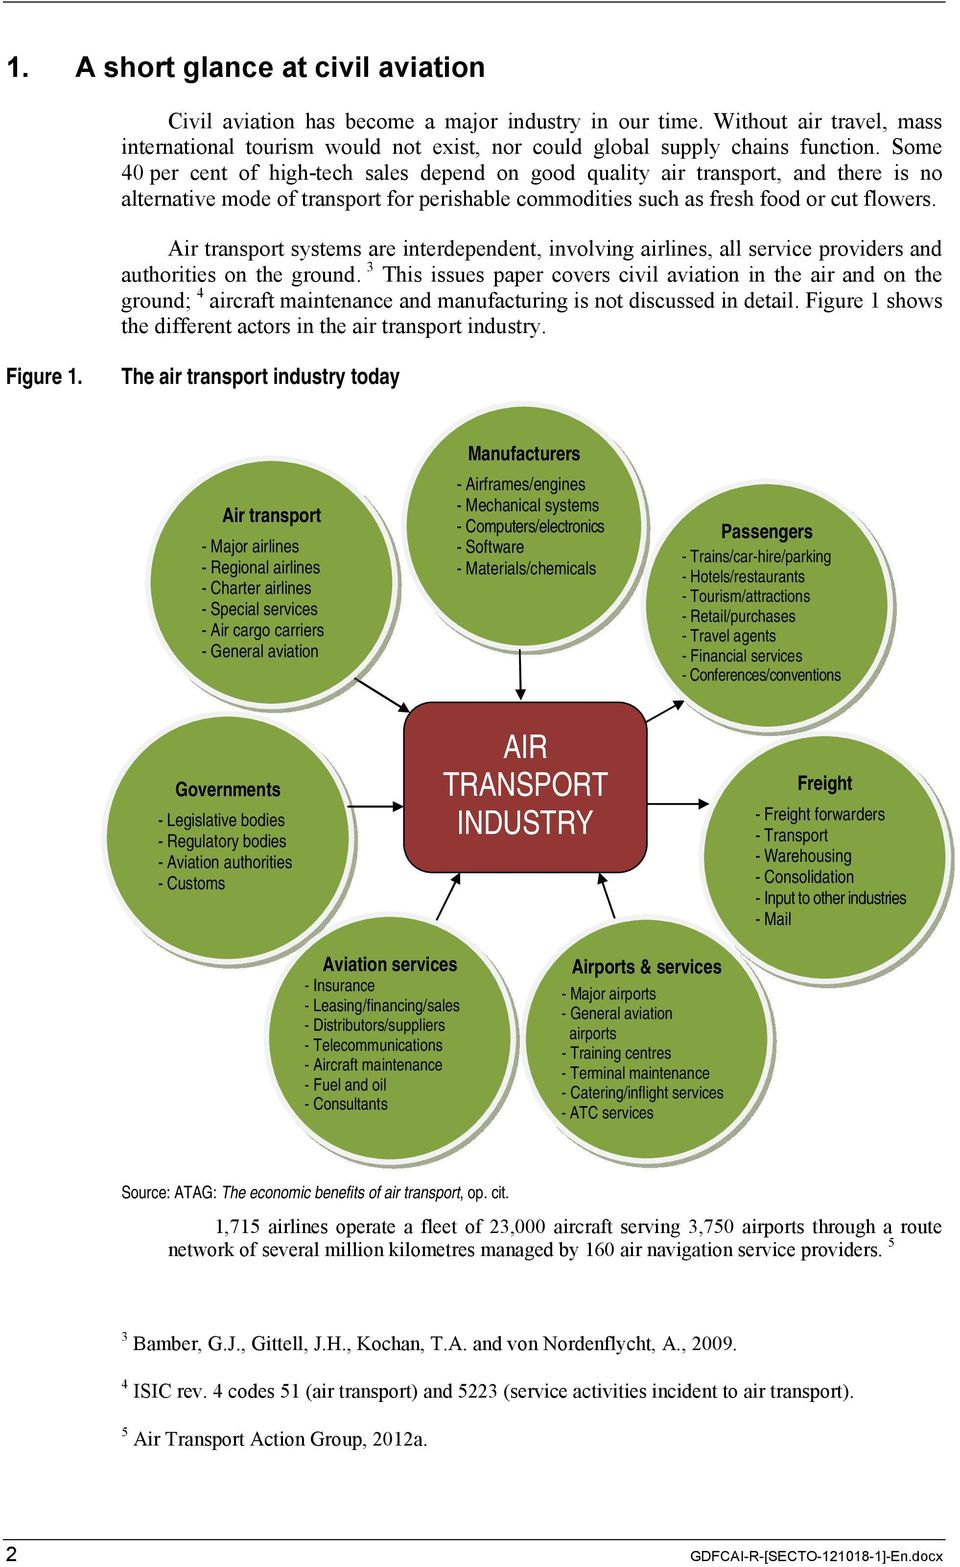 Air transport systems are interdependent, involving airlines, all service providers and authorities on the ground.